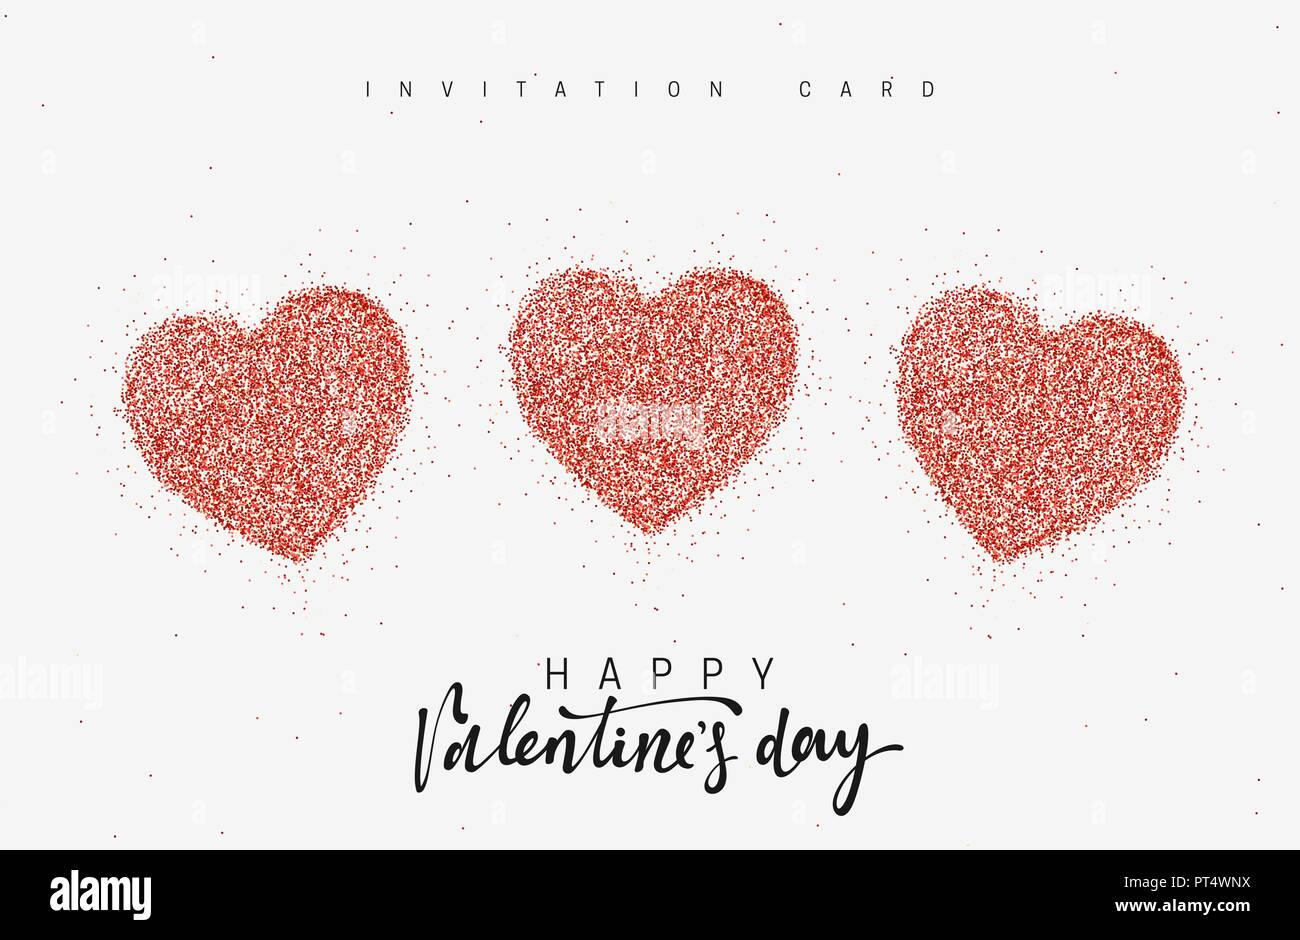 Happy Valentines Day Greeting Cards Holiday Phrase For Design Of